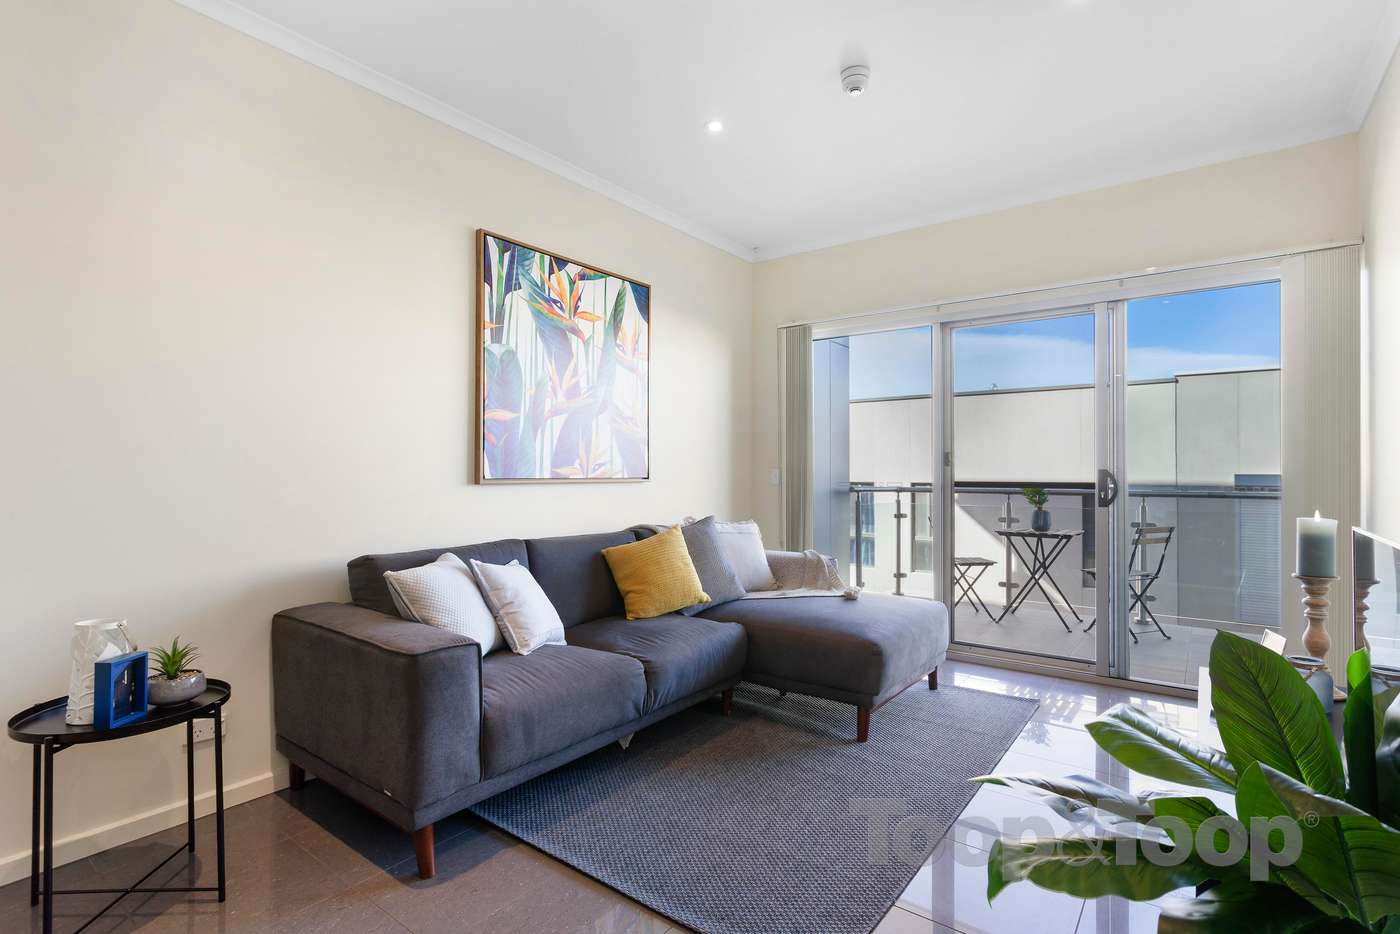 Fifth view of Homely apartment listing, 5/103 Elder Drive, Mawson Lakes SA 5095